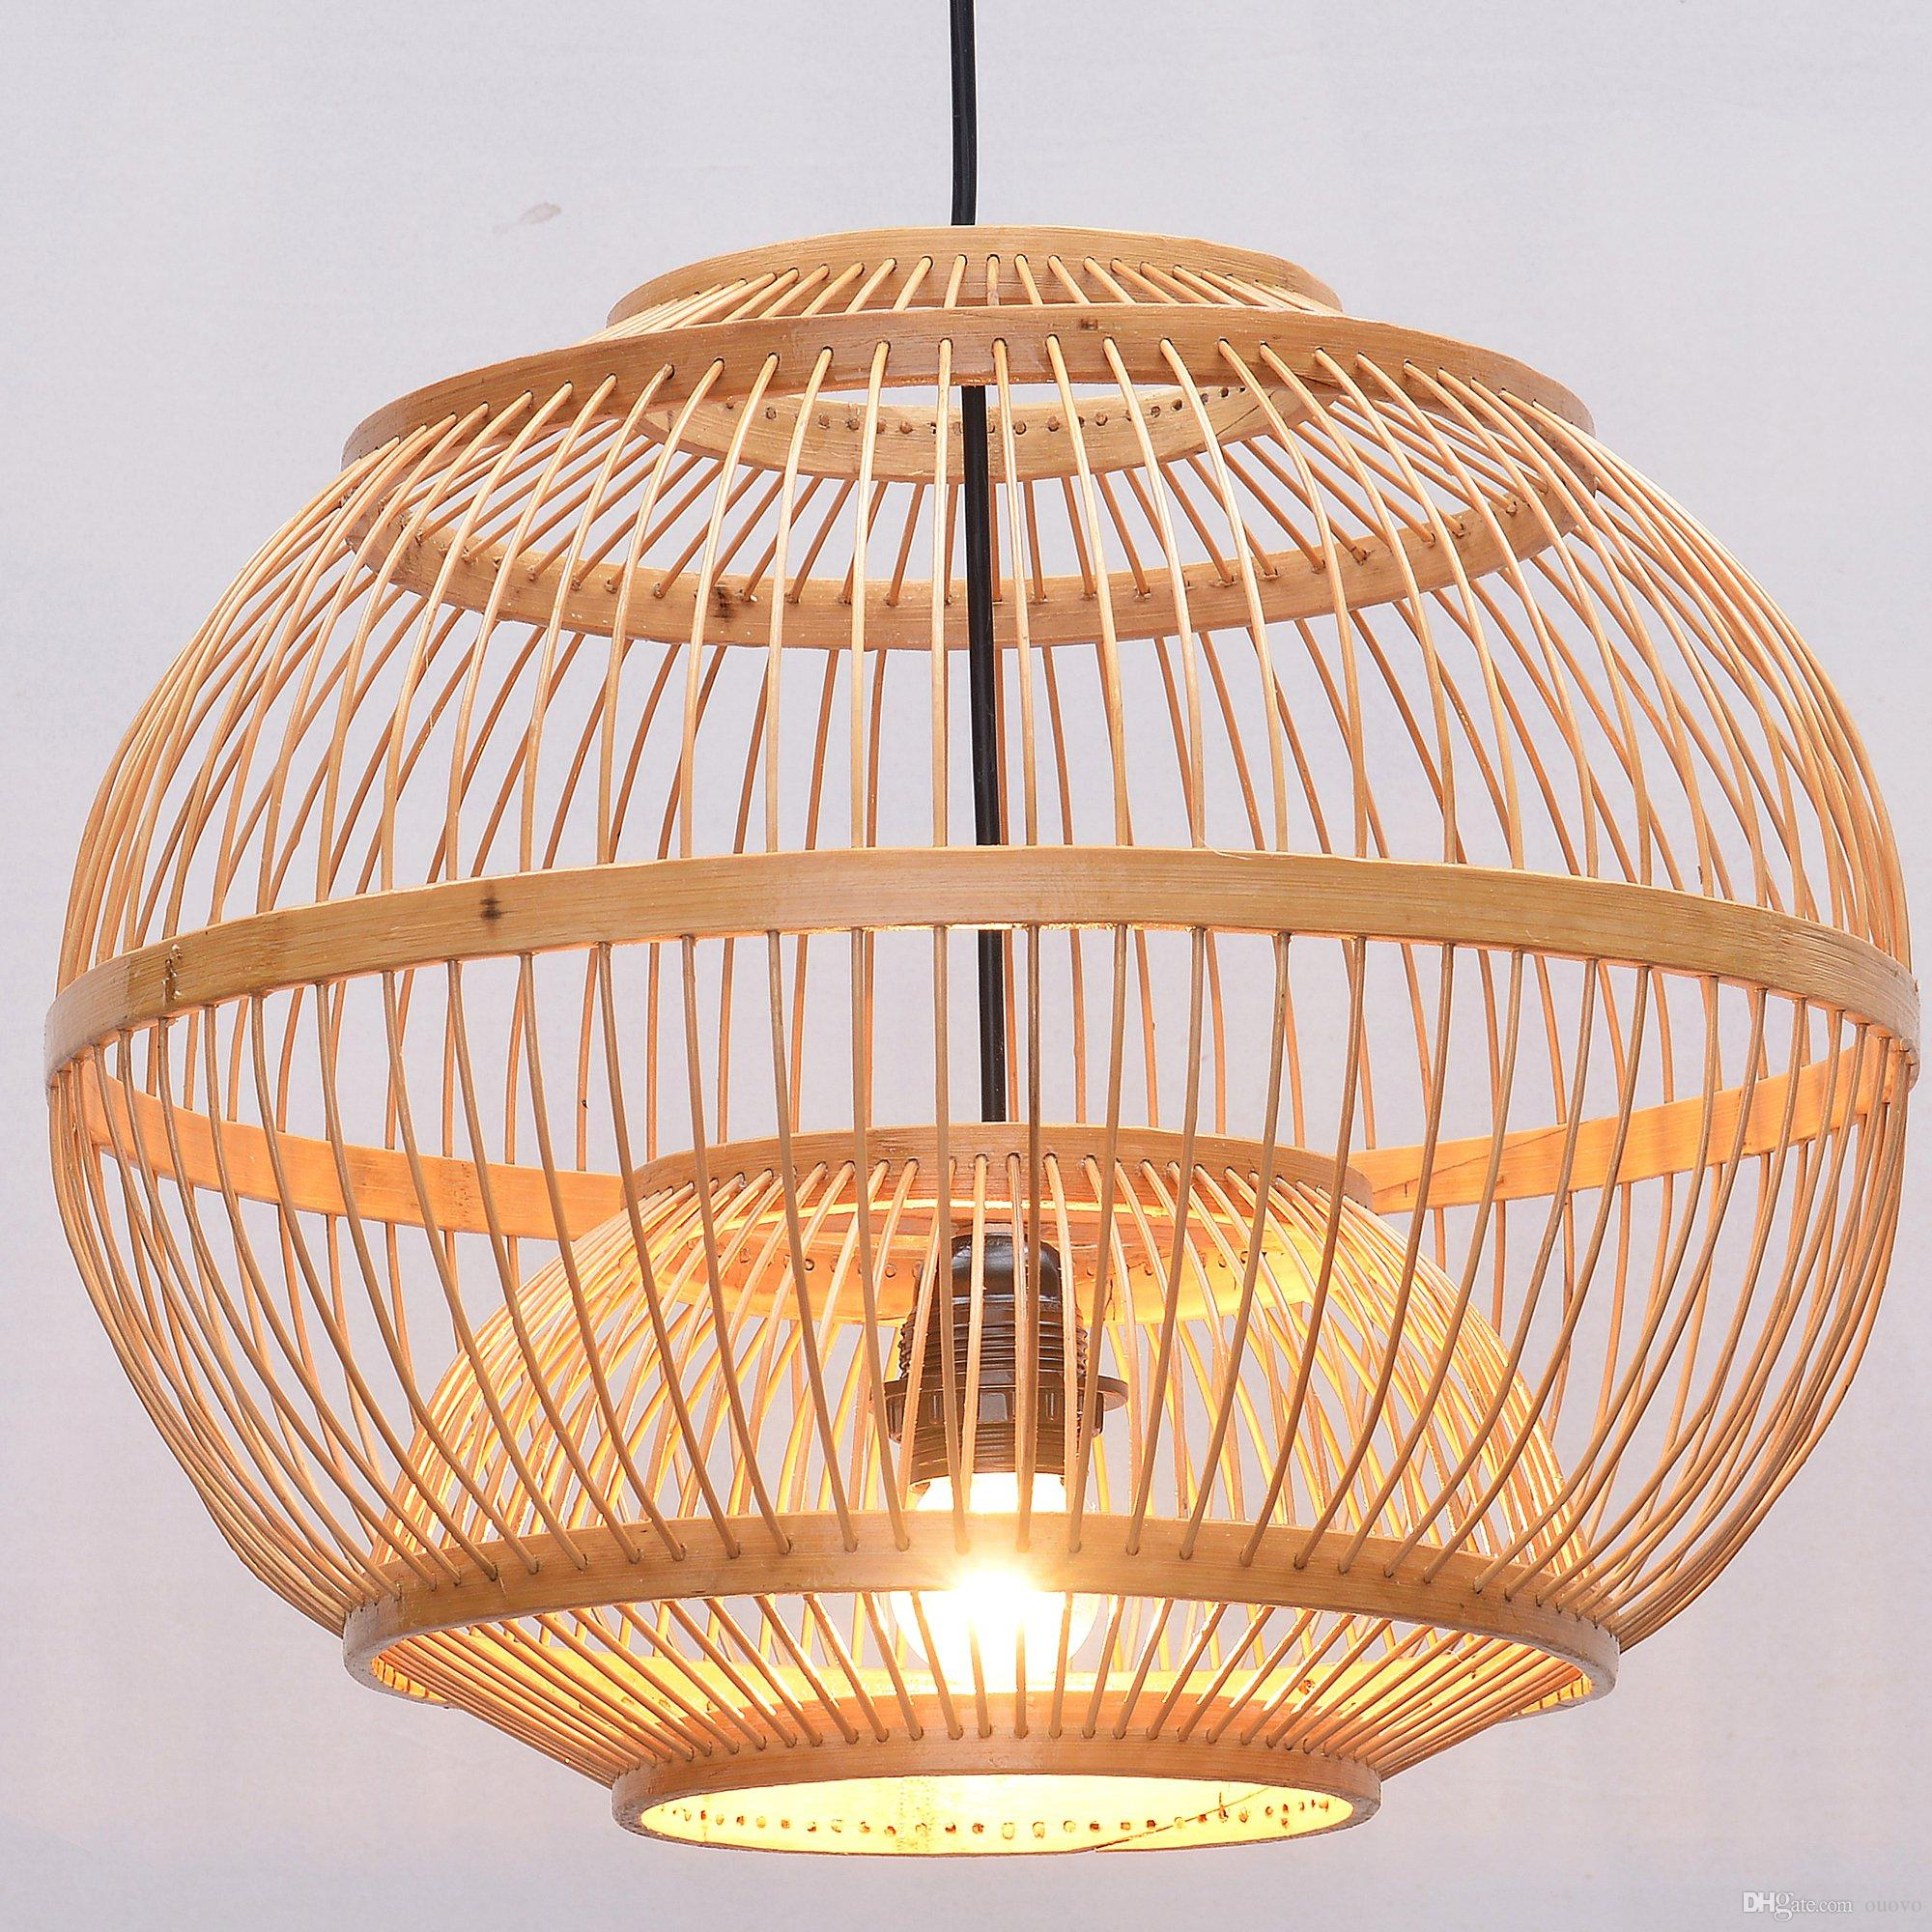 South Asian Bamboo Lantern Dining Room Ceiling Pendant Lamp Japanese Restaurant Lights Country Rustic Hanging Lamps Fans With